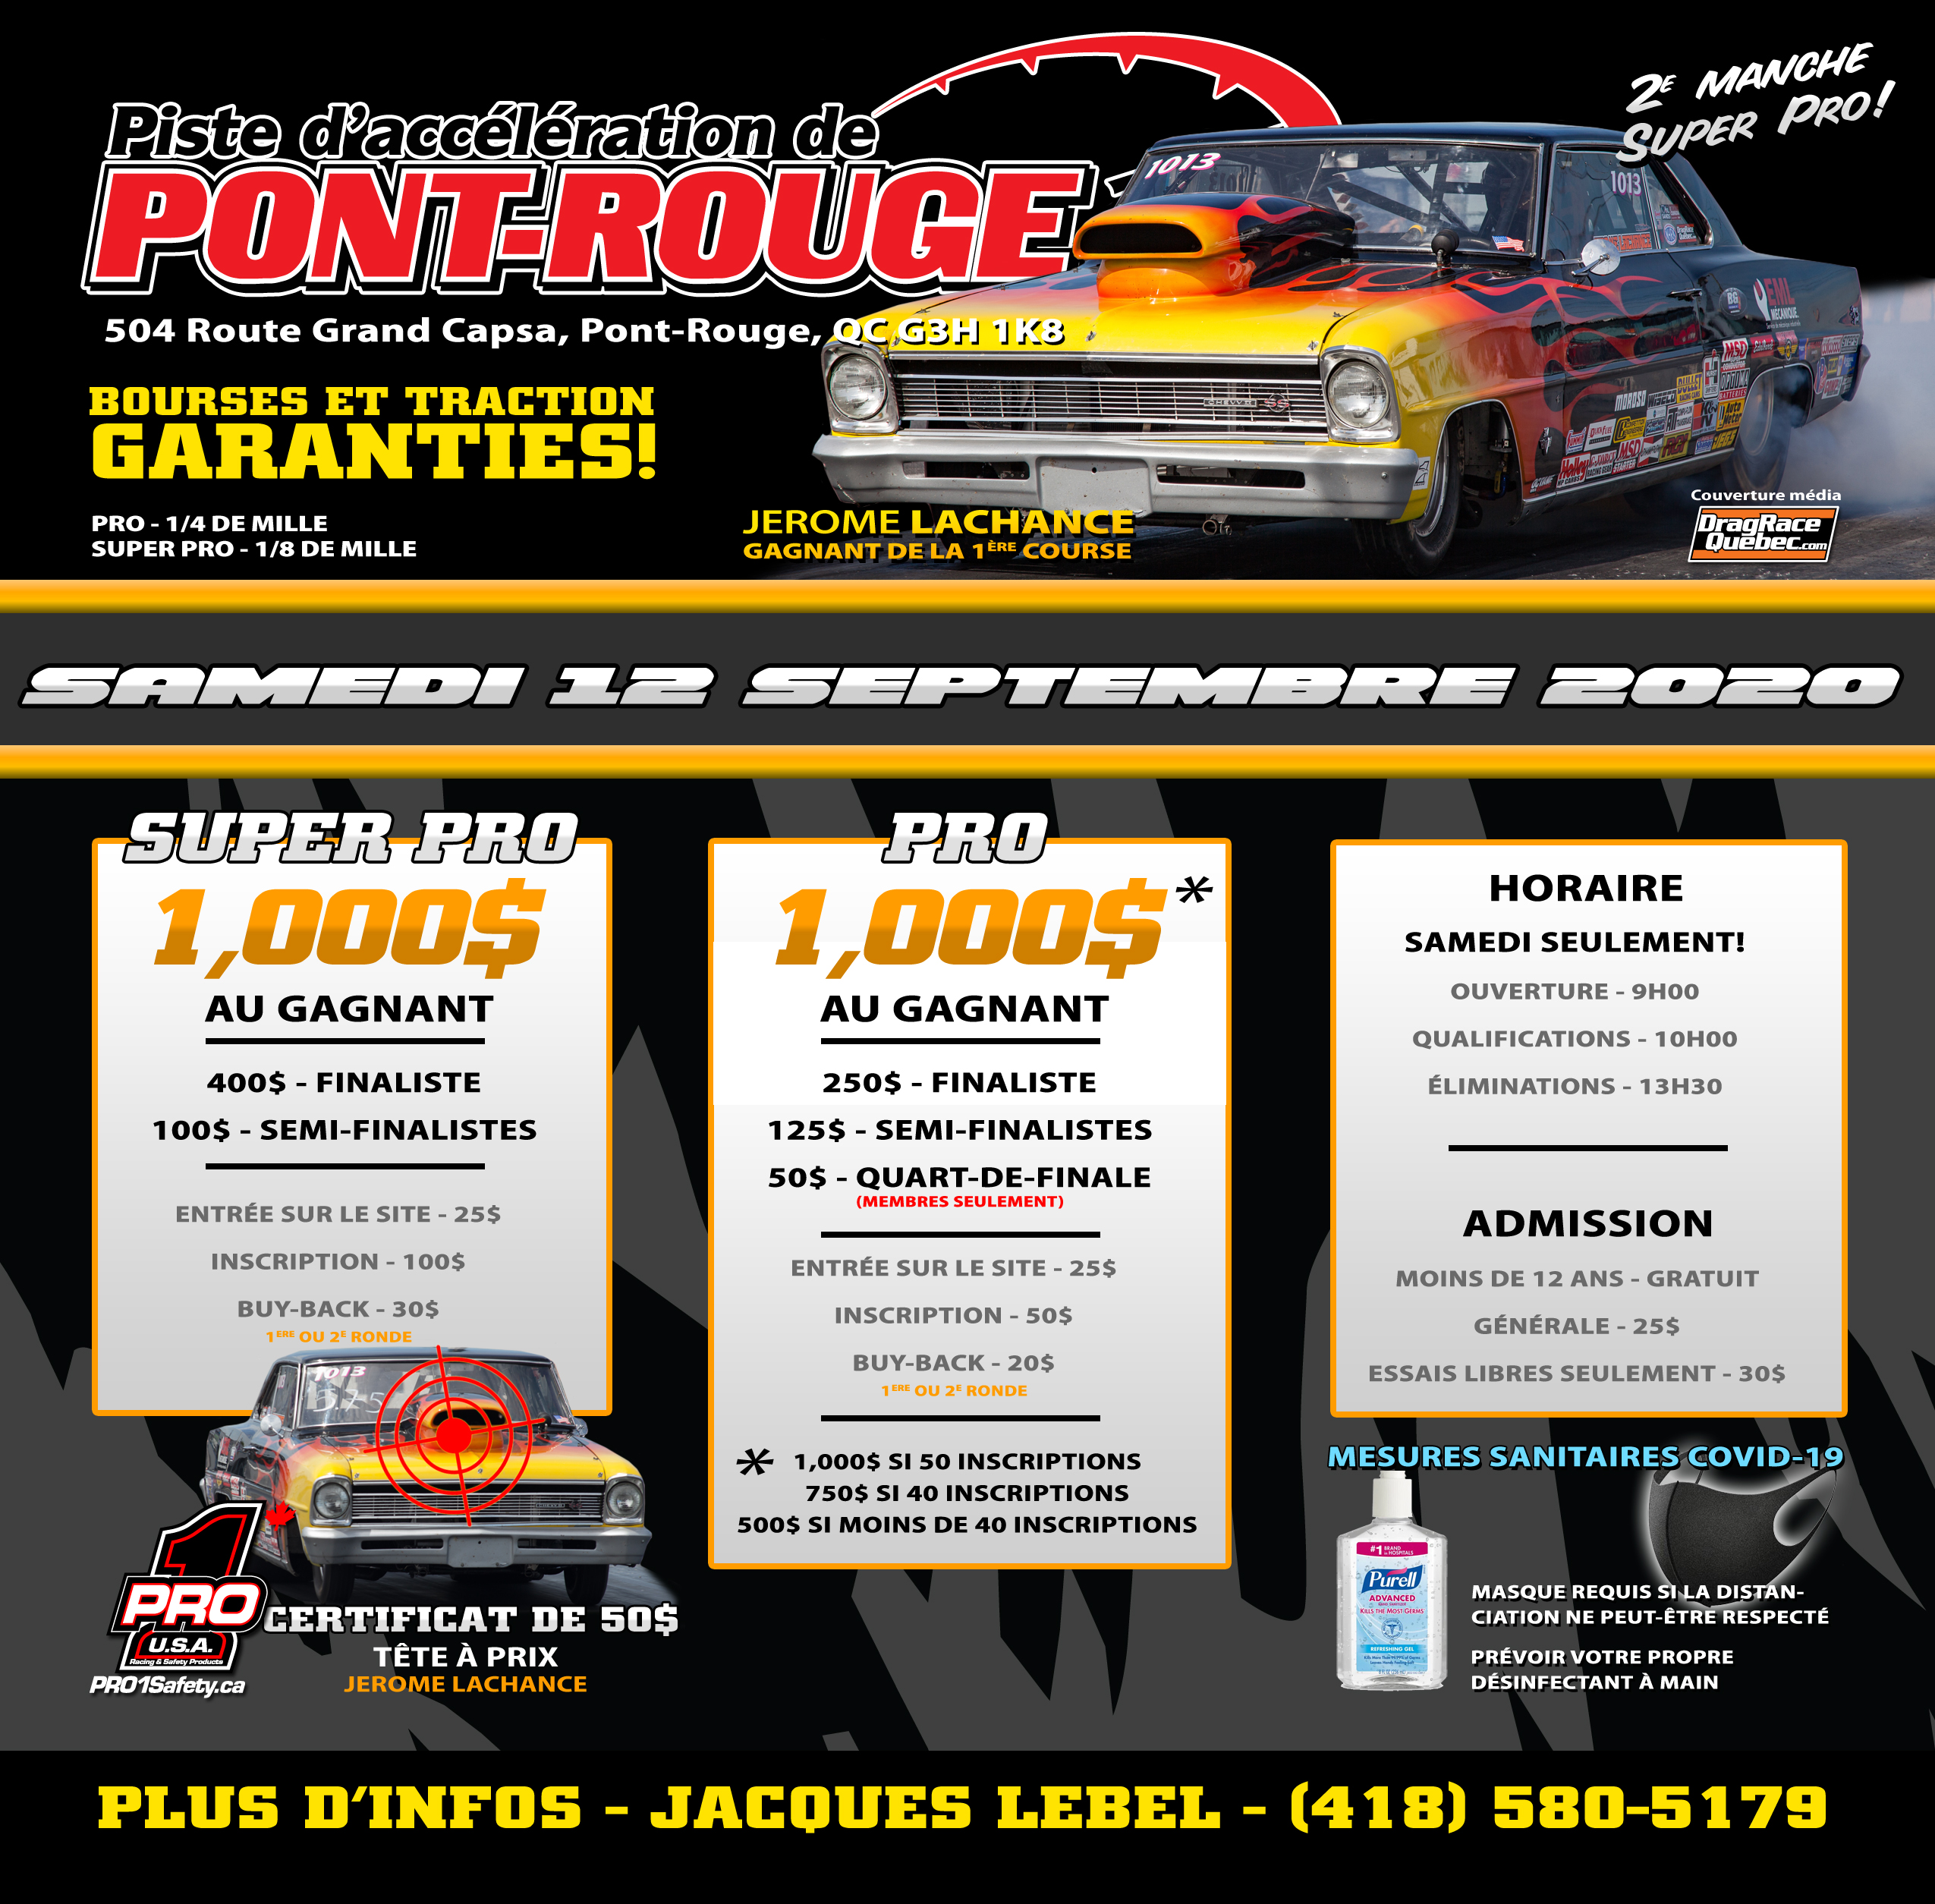 2020-08-20 Flyer Pont-Rouge 2